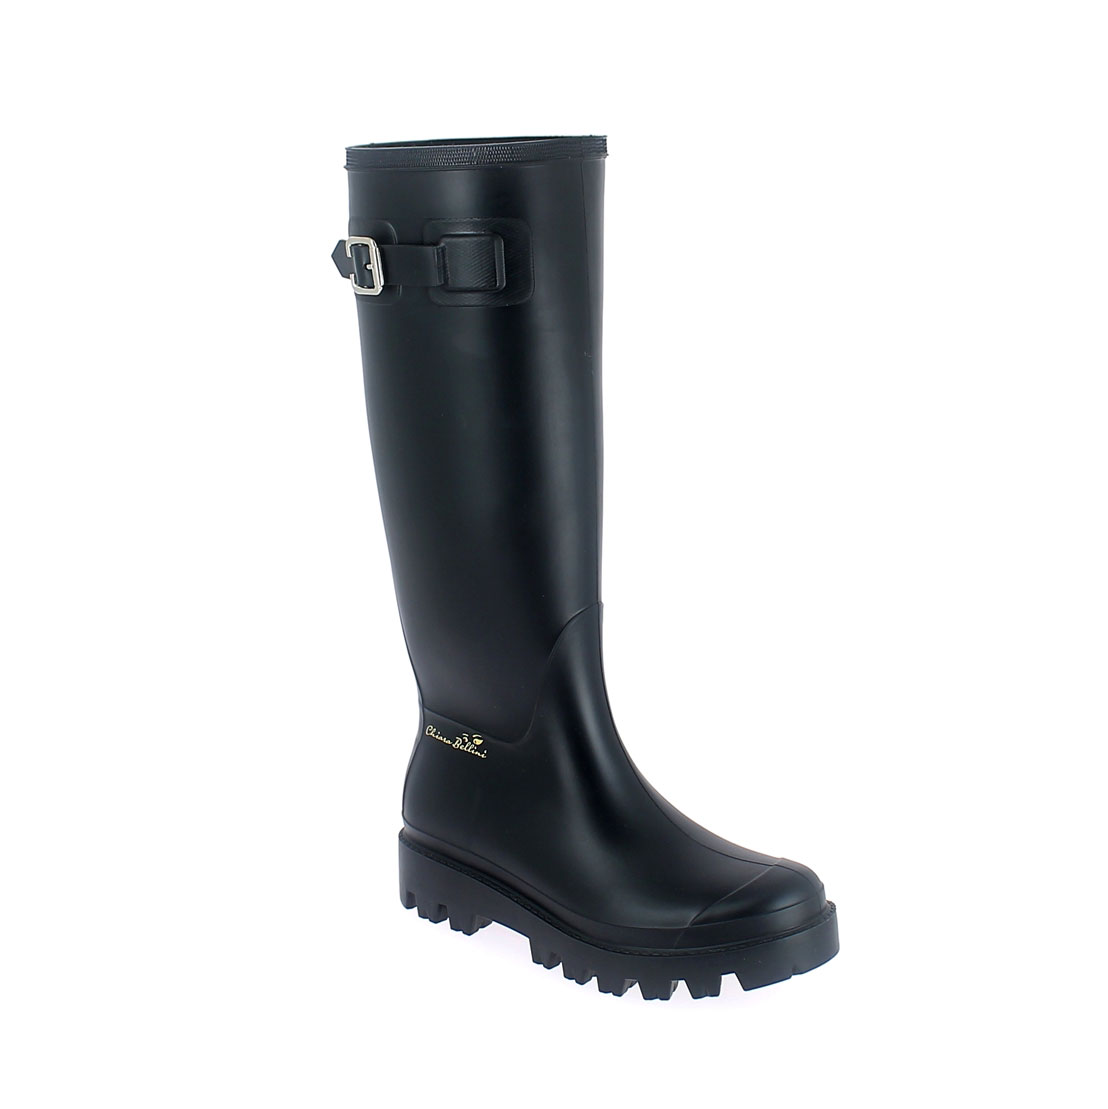 Wellington boot in Black pvc with metal buckle and 3D logo